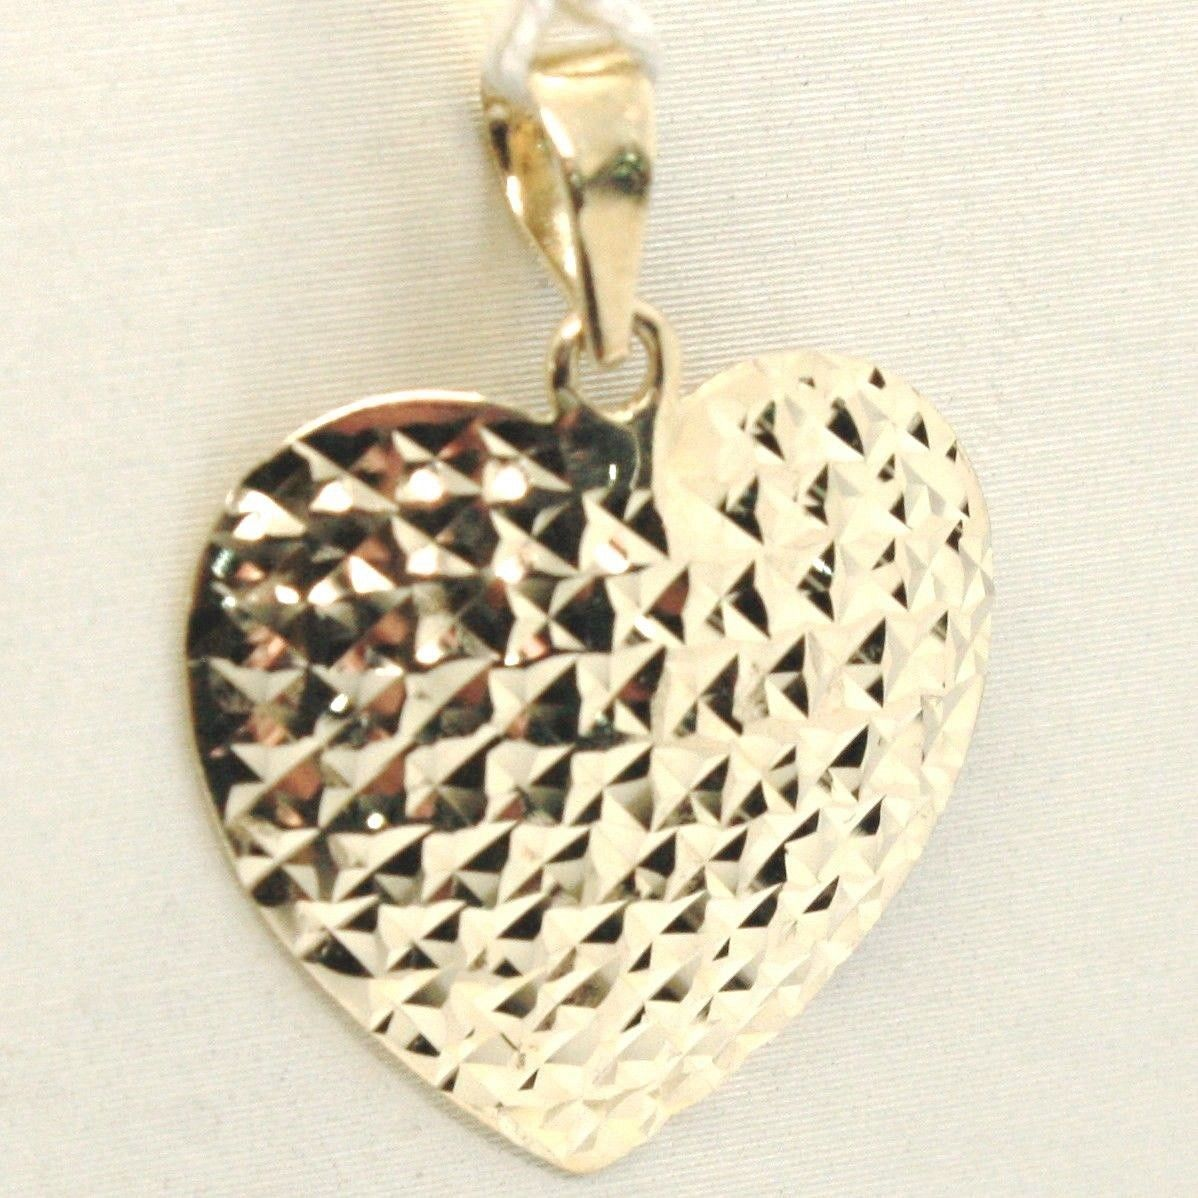 YELLOW GOLD PENDANT 0,5 WHITE 750 18K, HEART FINELY MILLED, MADE IN ITALY